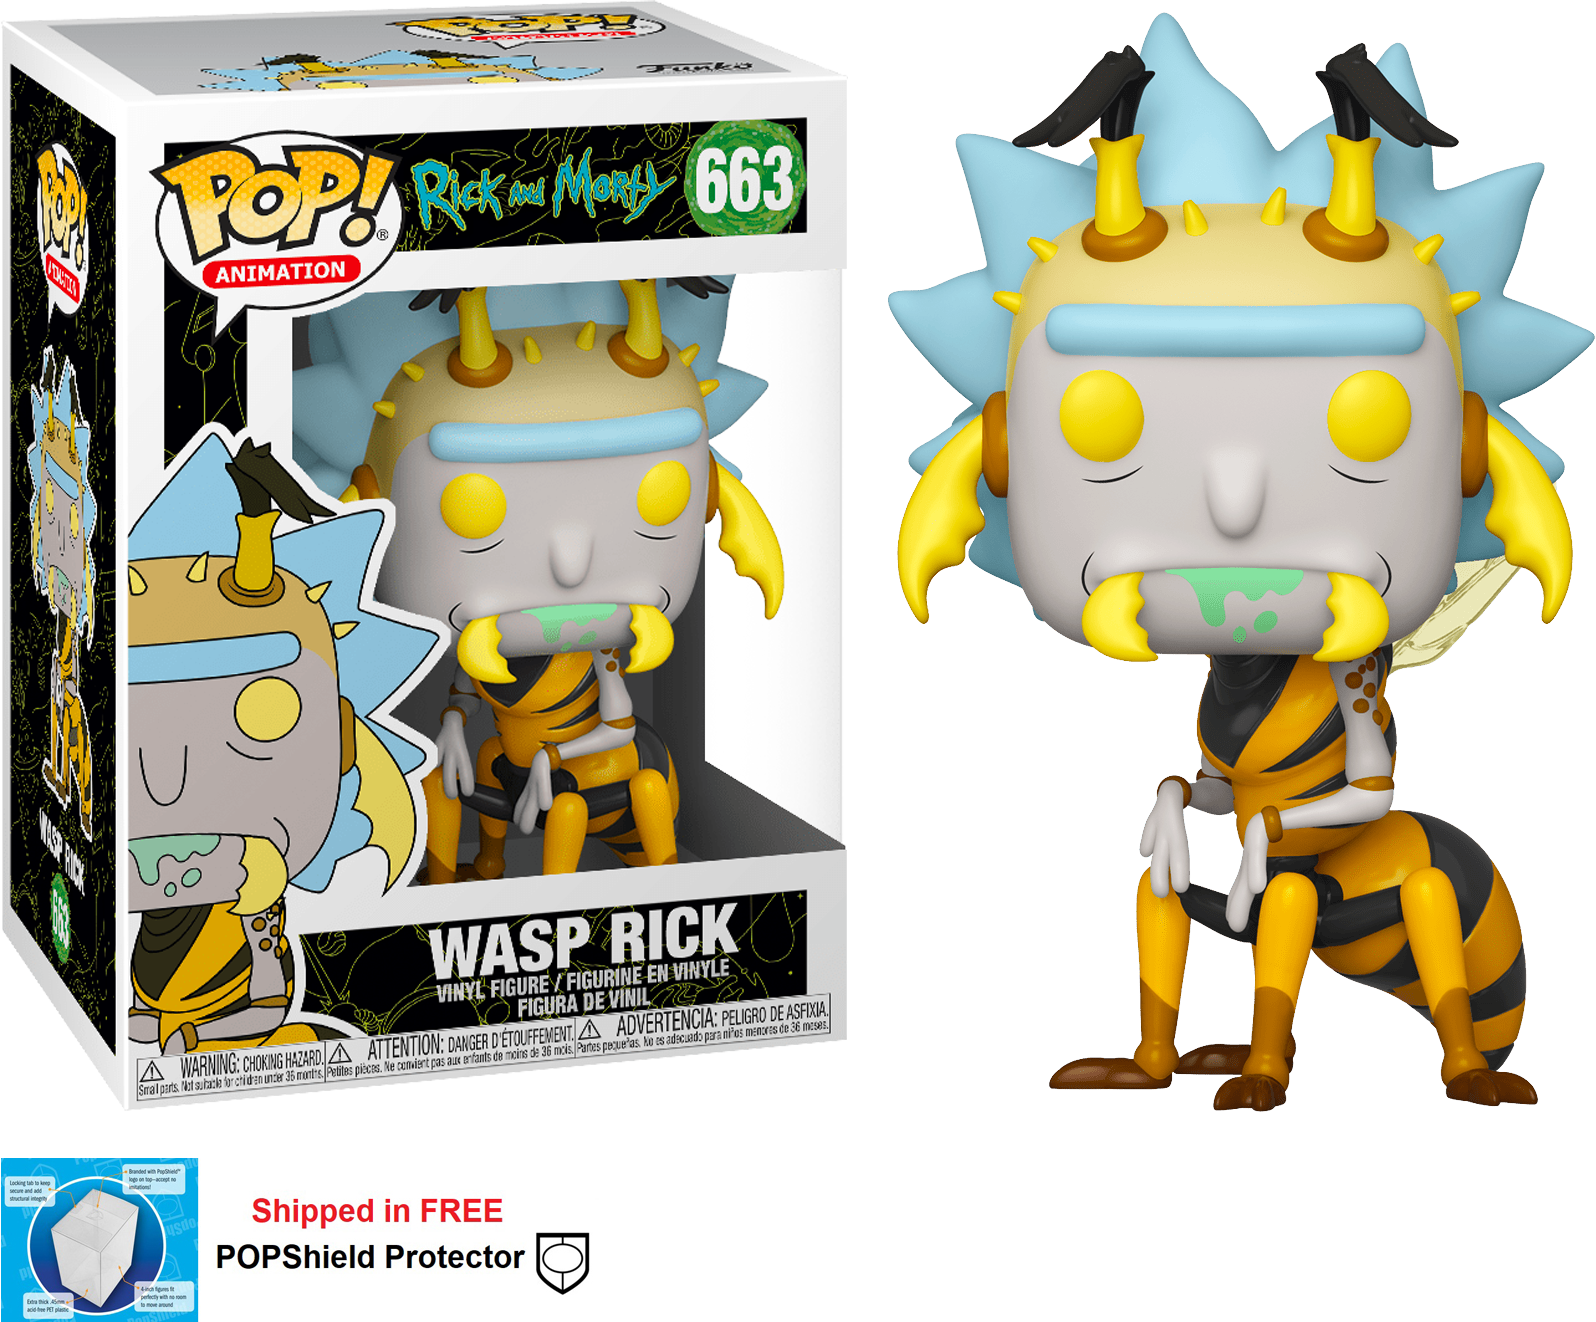 Funko POP Animation Rick and Morty Wasp Rick Figure - #663